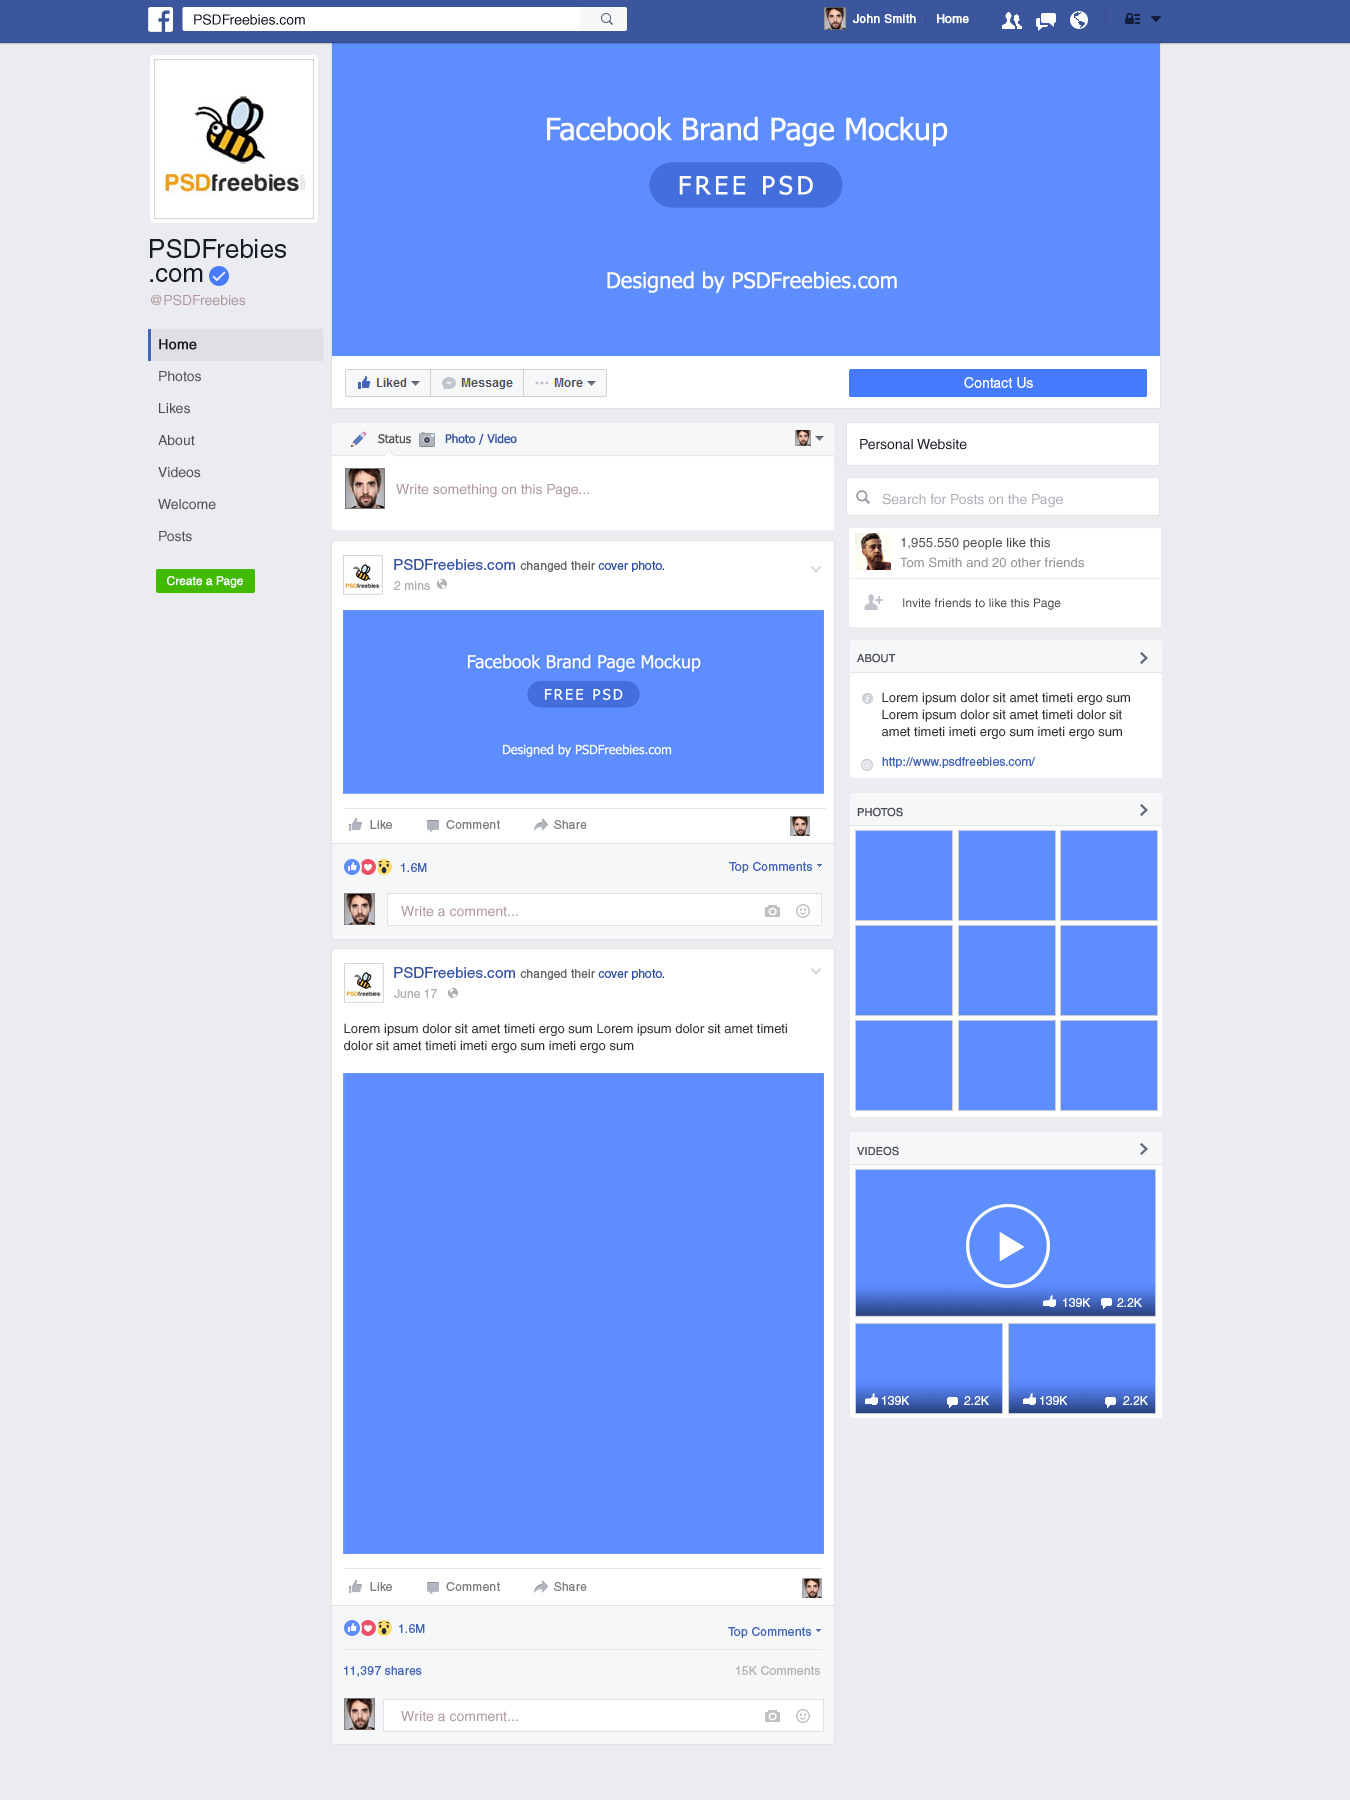 facebook-new-brand-page-2016-mockup